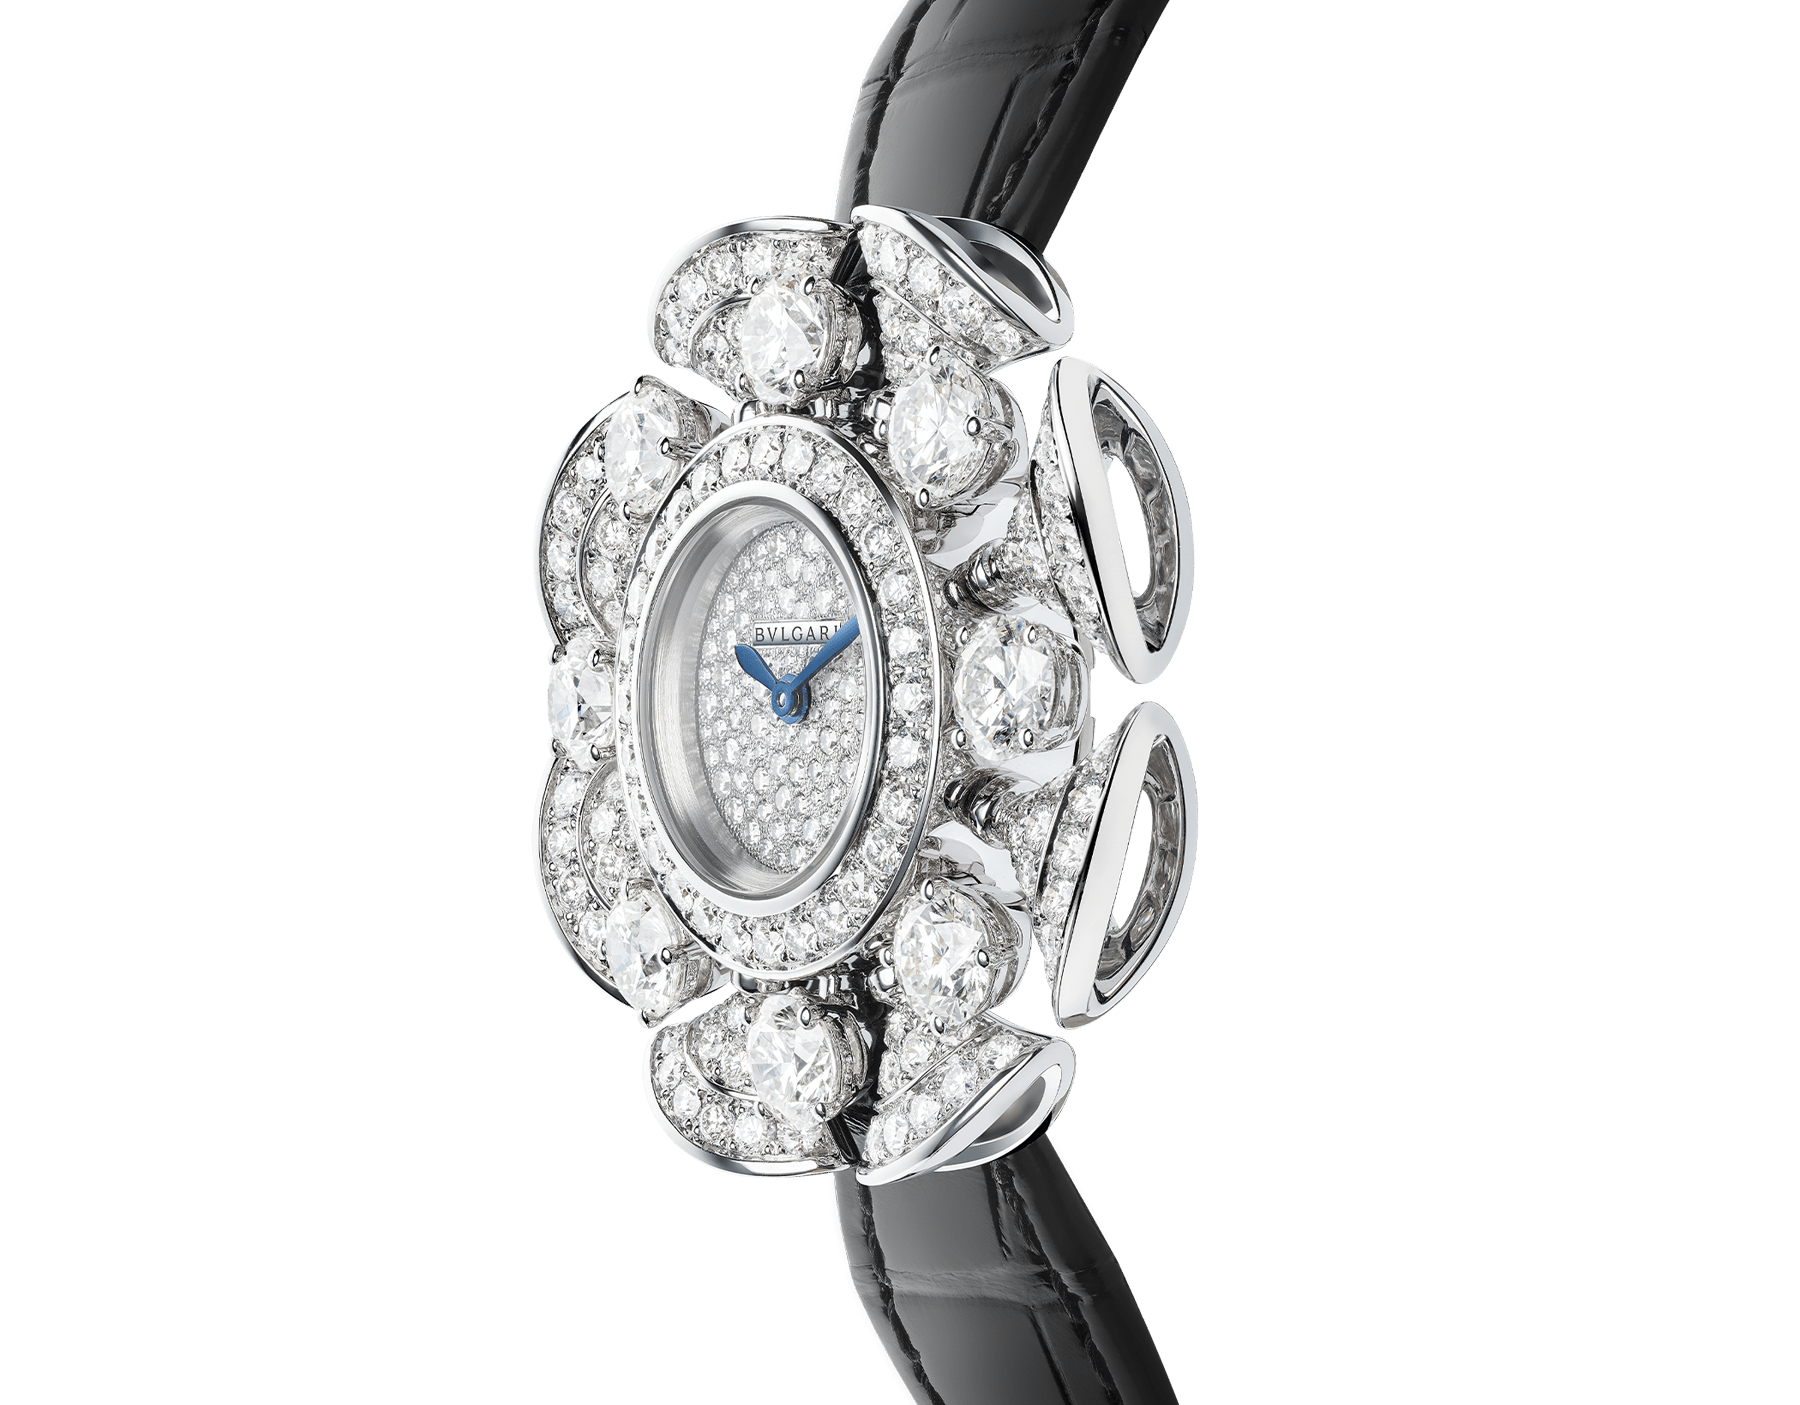 DIVAS' DREAM Divissima High Jewellery watch with 18 kt white gold case and mobile petals set with 8 large round brilliant-cut diamonds and other round brilliant-cut diamonds, pavé diamond dial and black alligator bracelet. Water-resistant up to 30 metres 103474 image 2